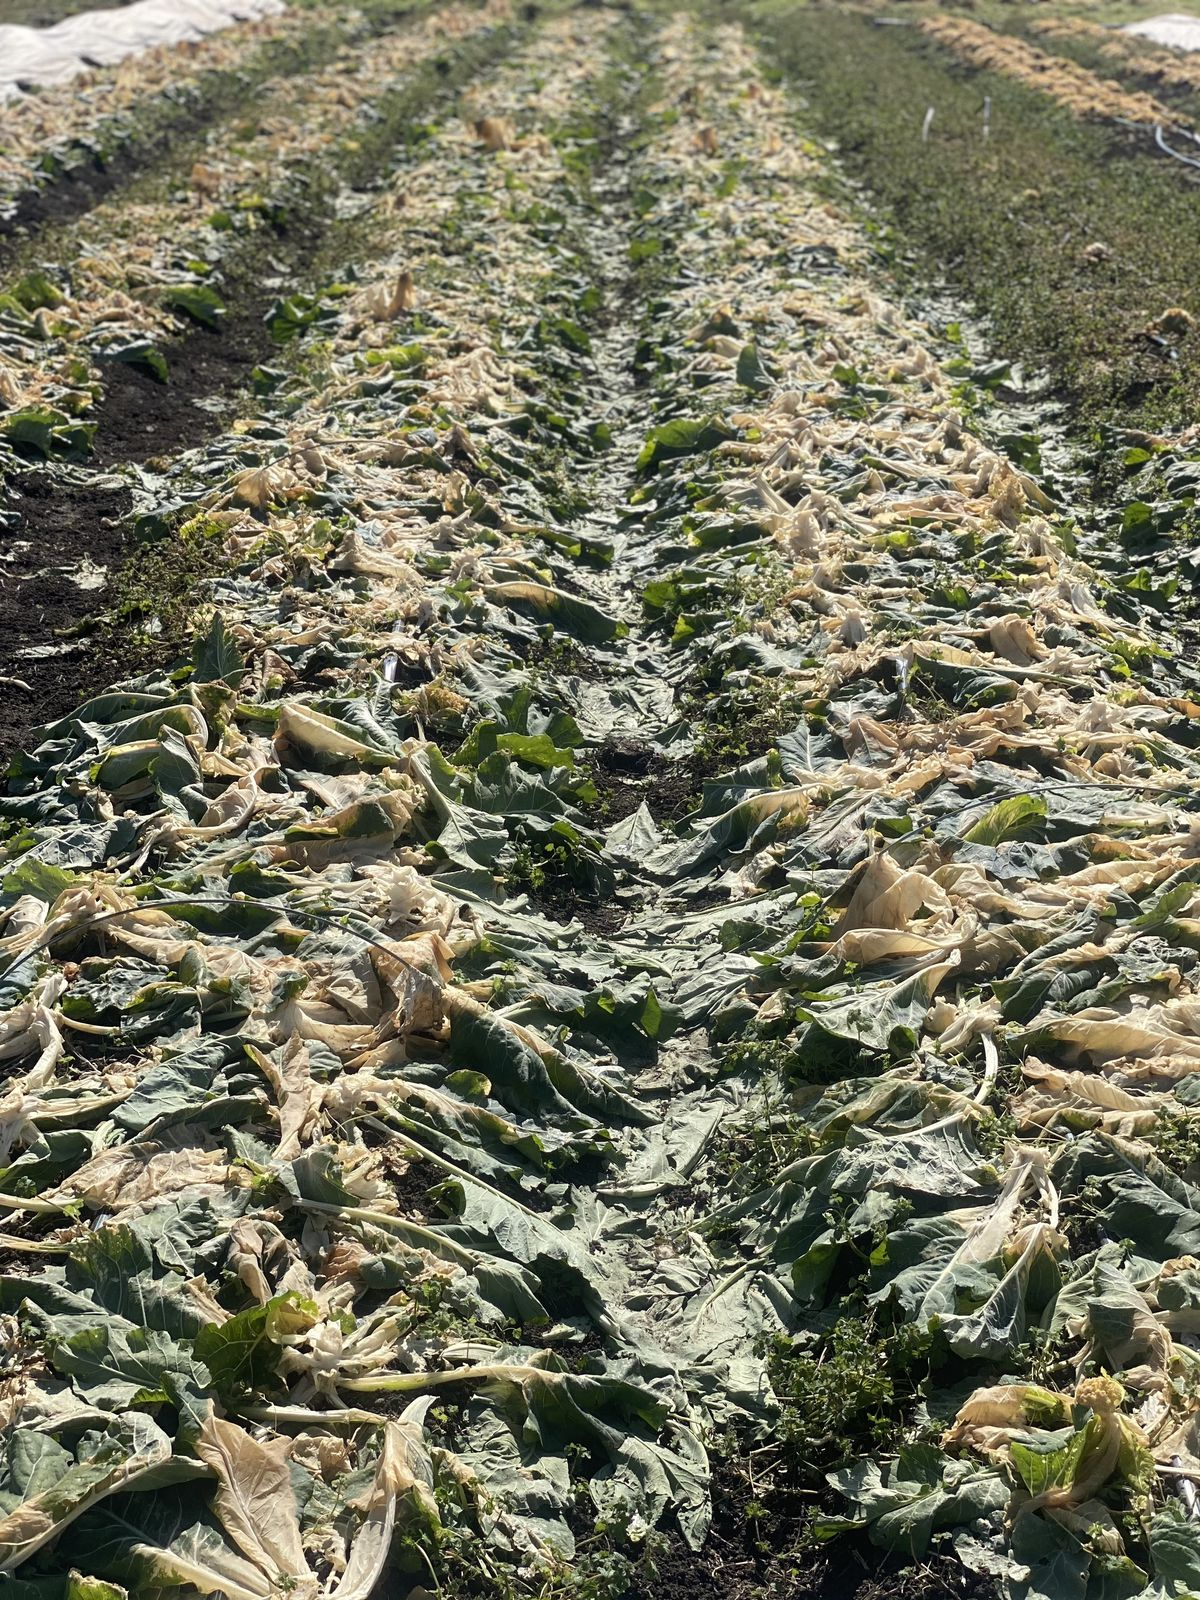 Rows of wilted green kale